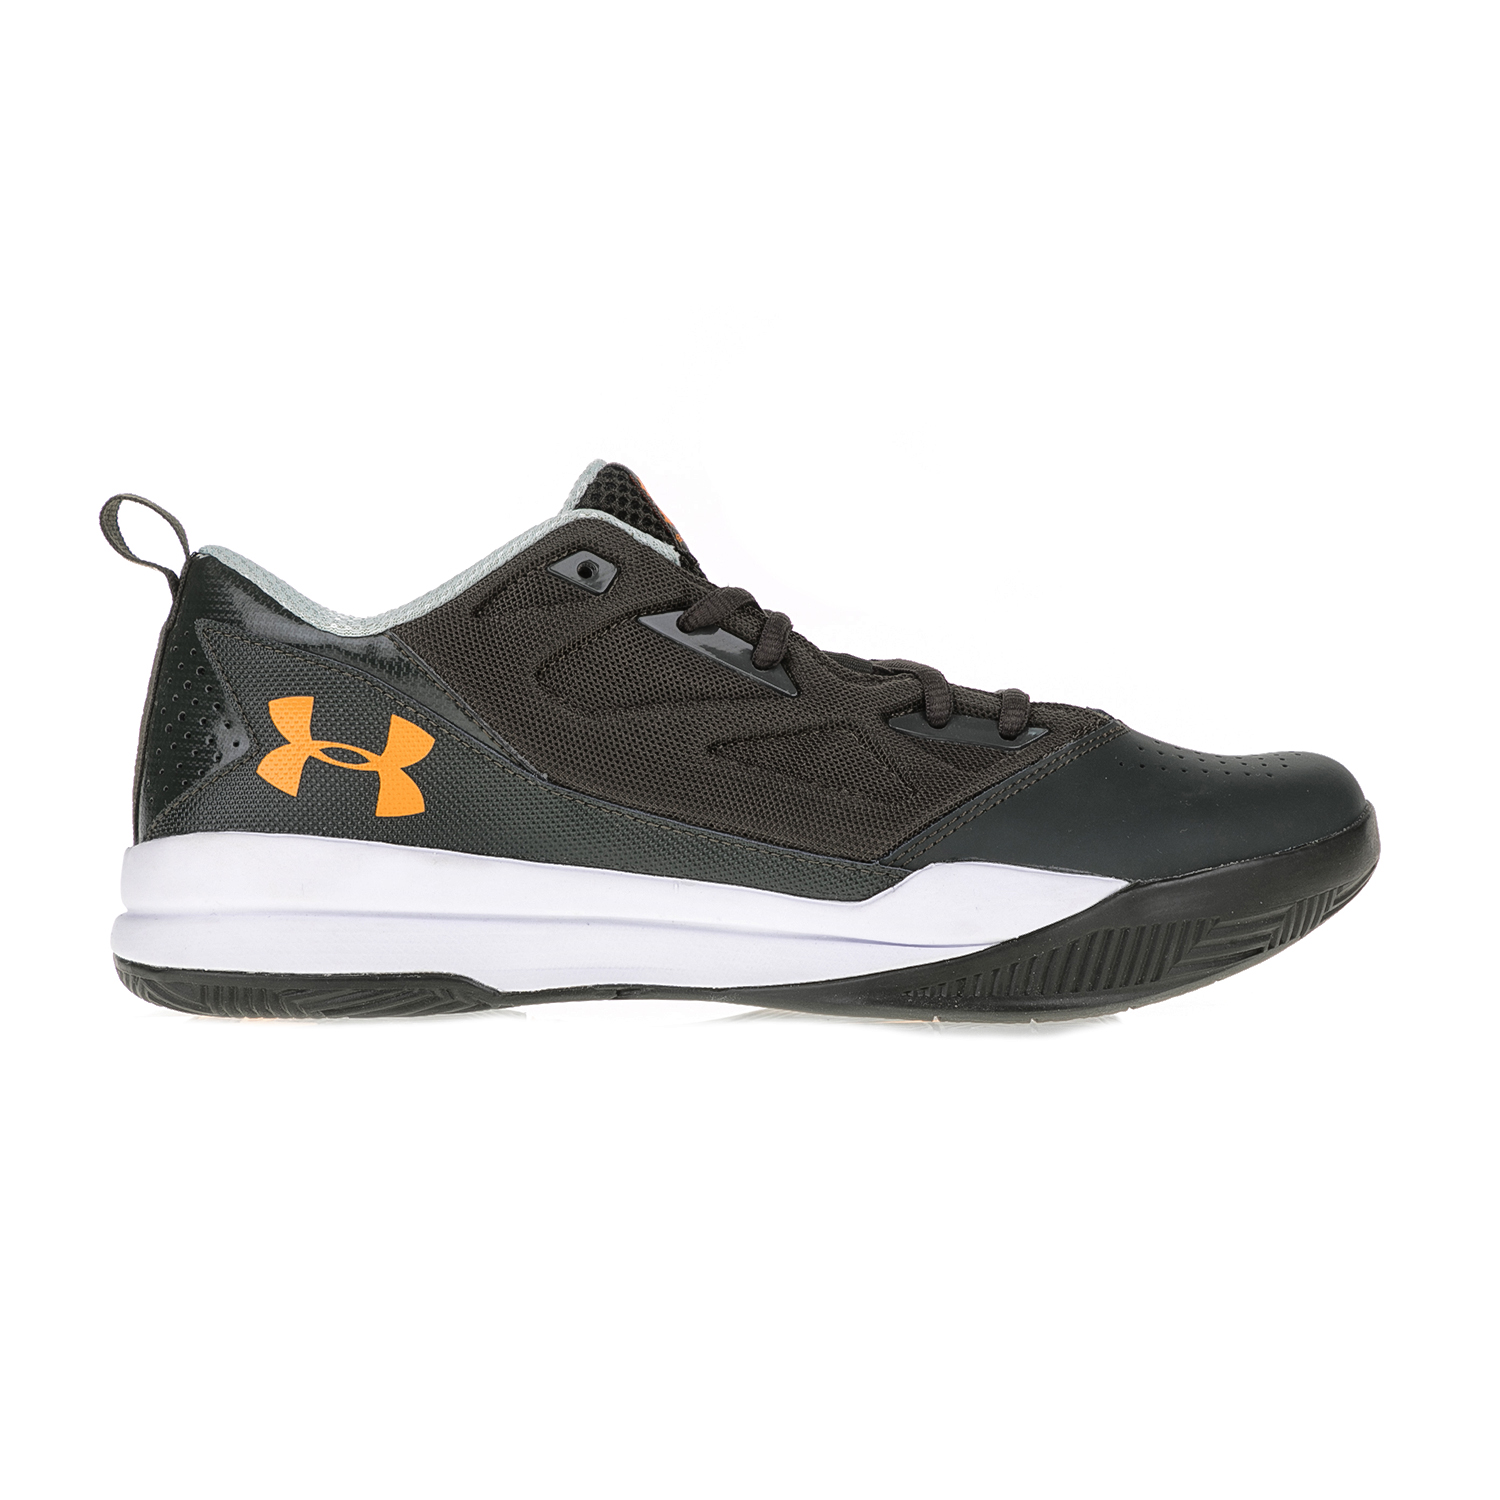 UNDER ARMOUR – Ανδρικά παπούτσια μπάσκετ UNDER ARMOUR Jet Low FOOTWEAR μαύρα